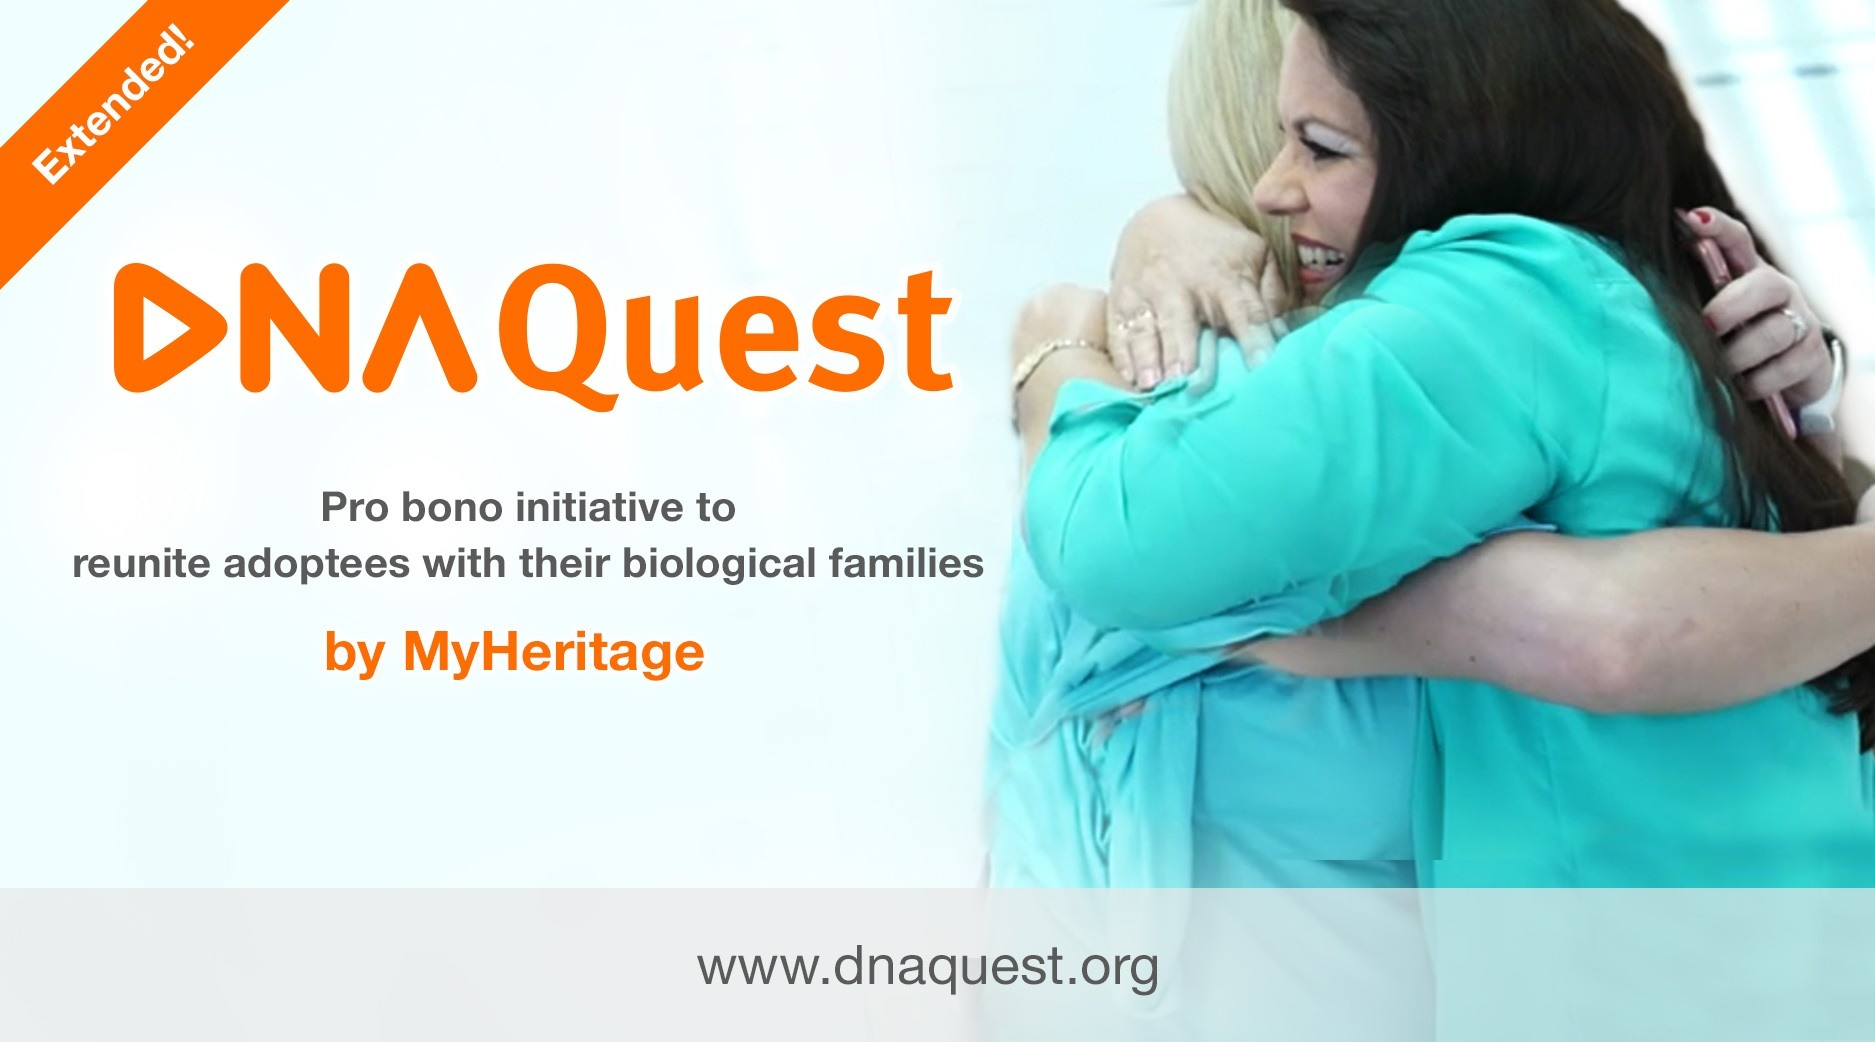 DNA Quest Initiative Is Extended